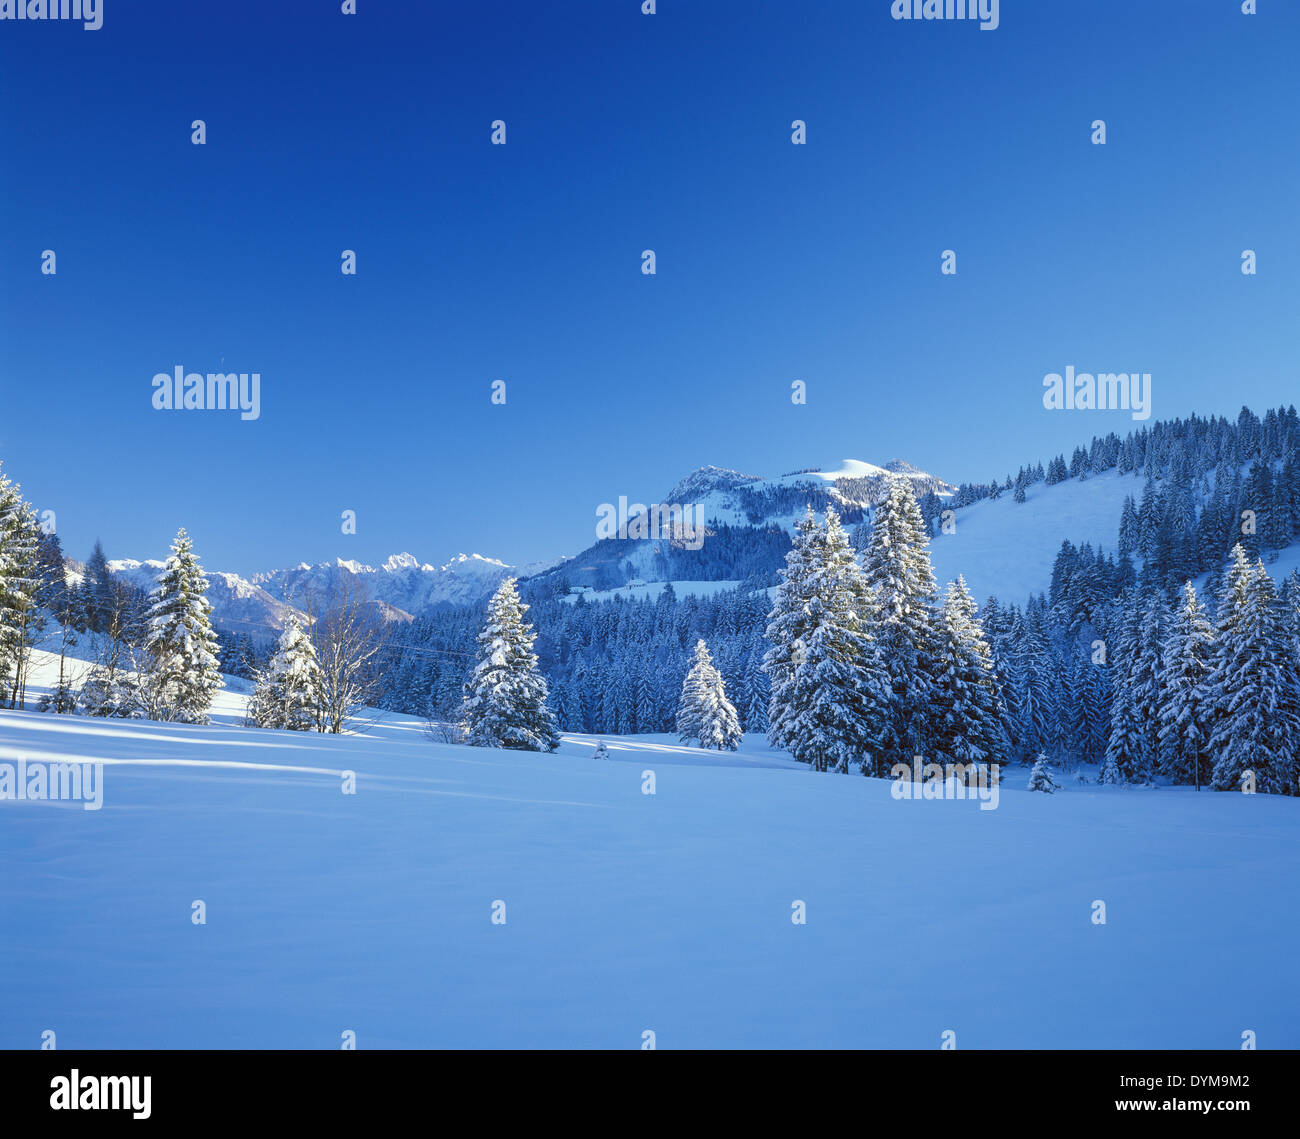 Sudelfeld skiing area with Mt Brünnstein, Kaiser Mountains, near Bayrischzell at the back, Mangfall Mountains, Upper Bavaria - Stock Image